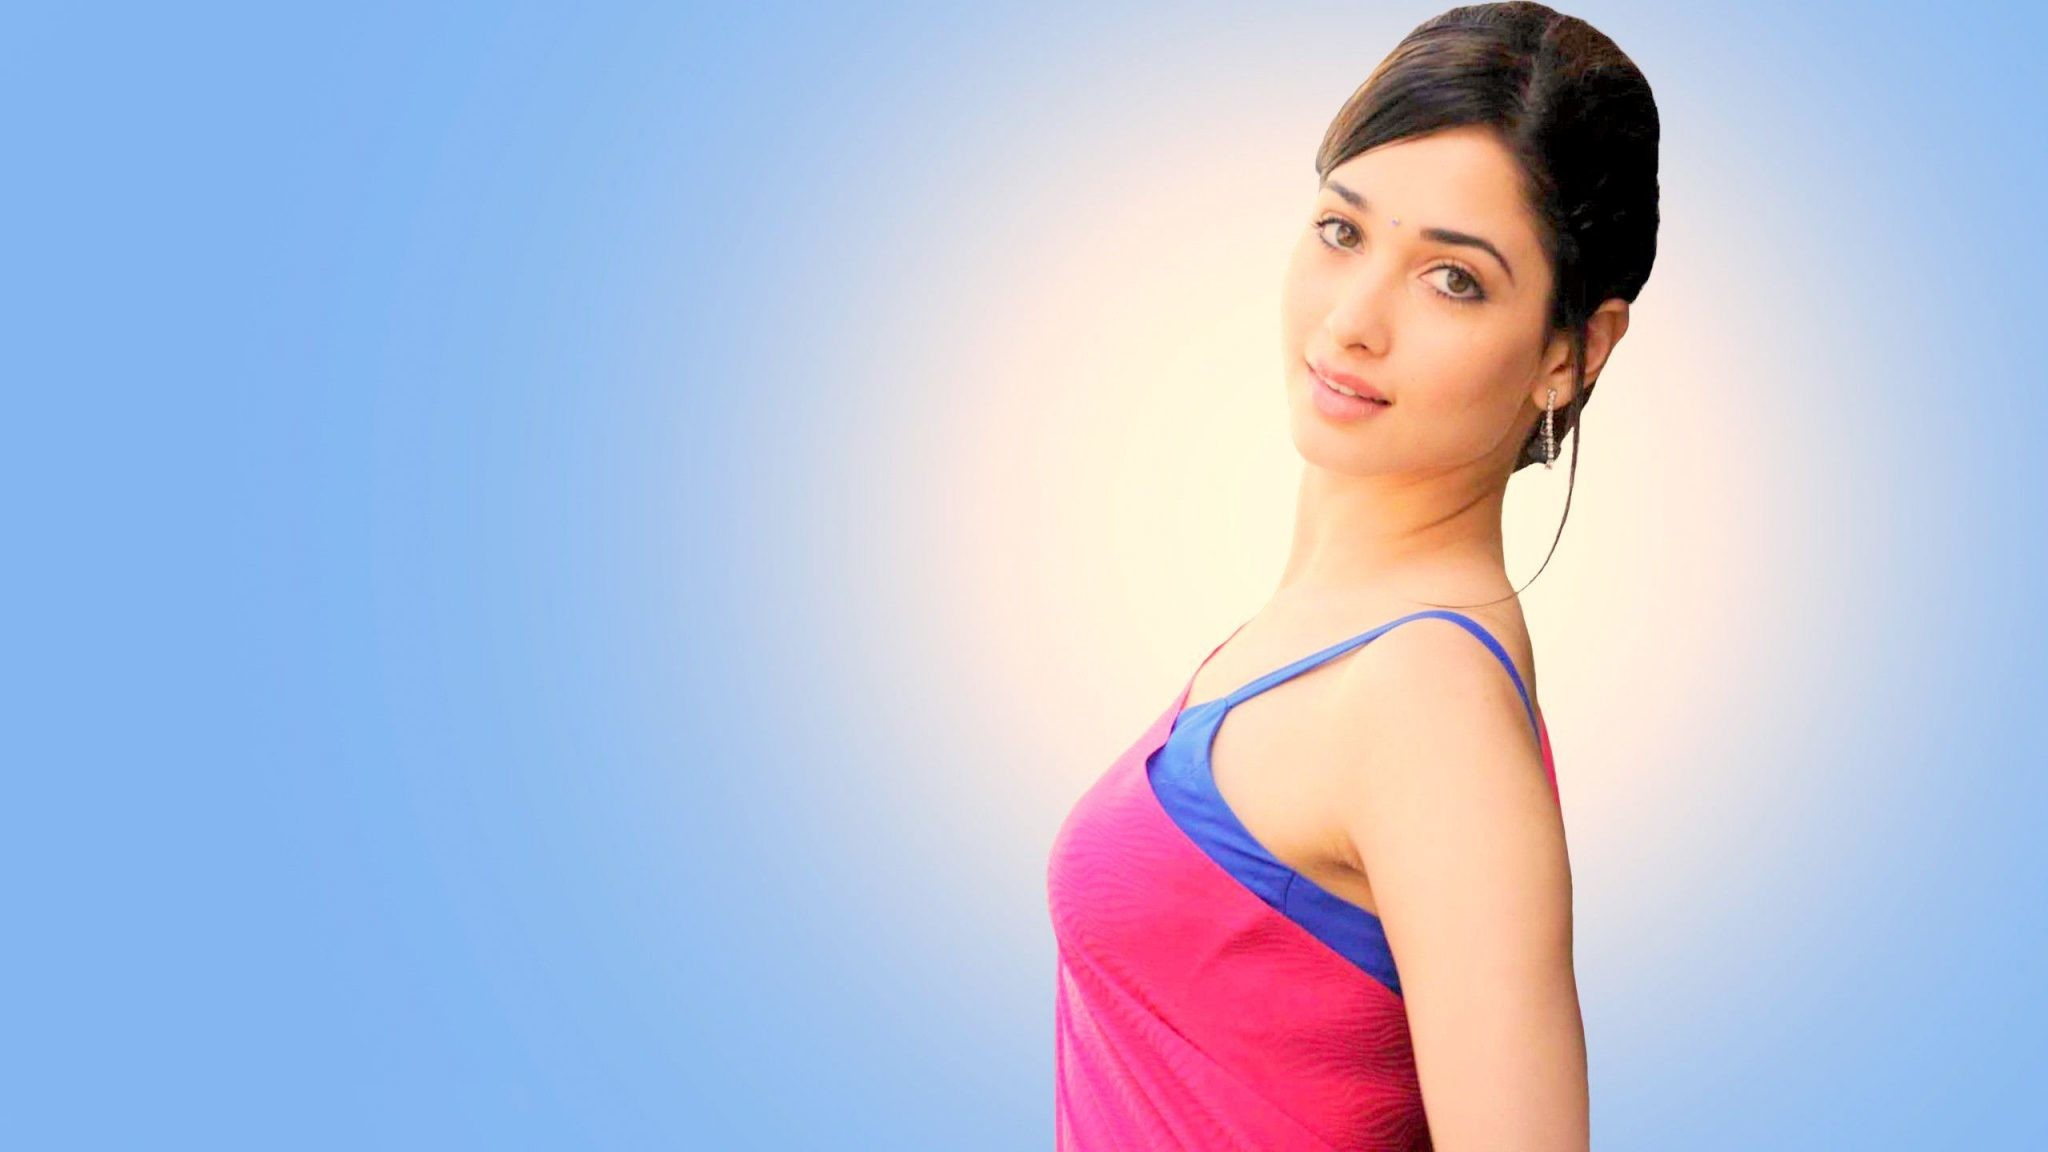 Tamanna Bhatia Wallpapers 1080p: Tamanna HD Wallpapers 2018 1080P (56+ Background Pictures